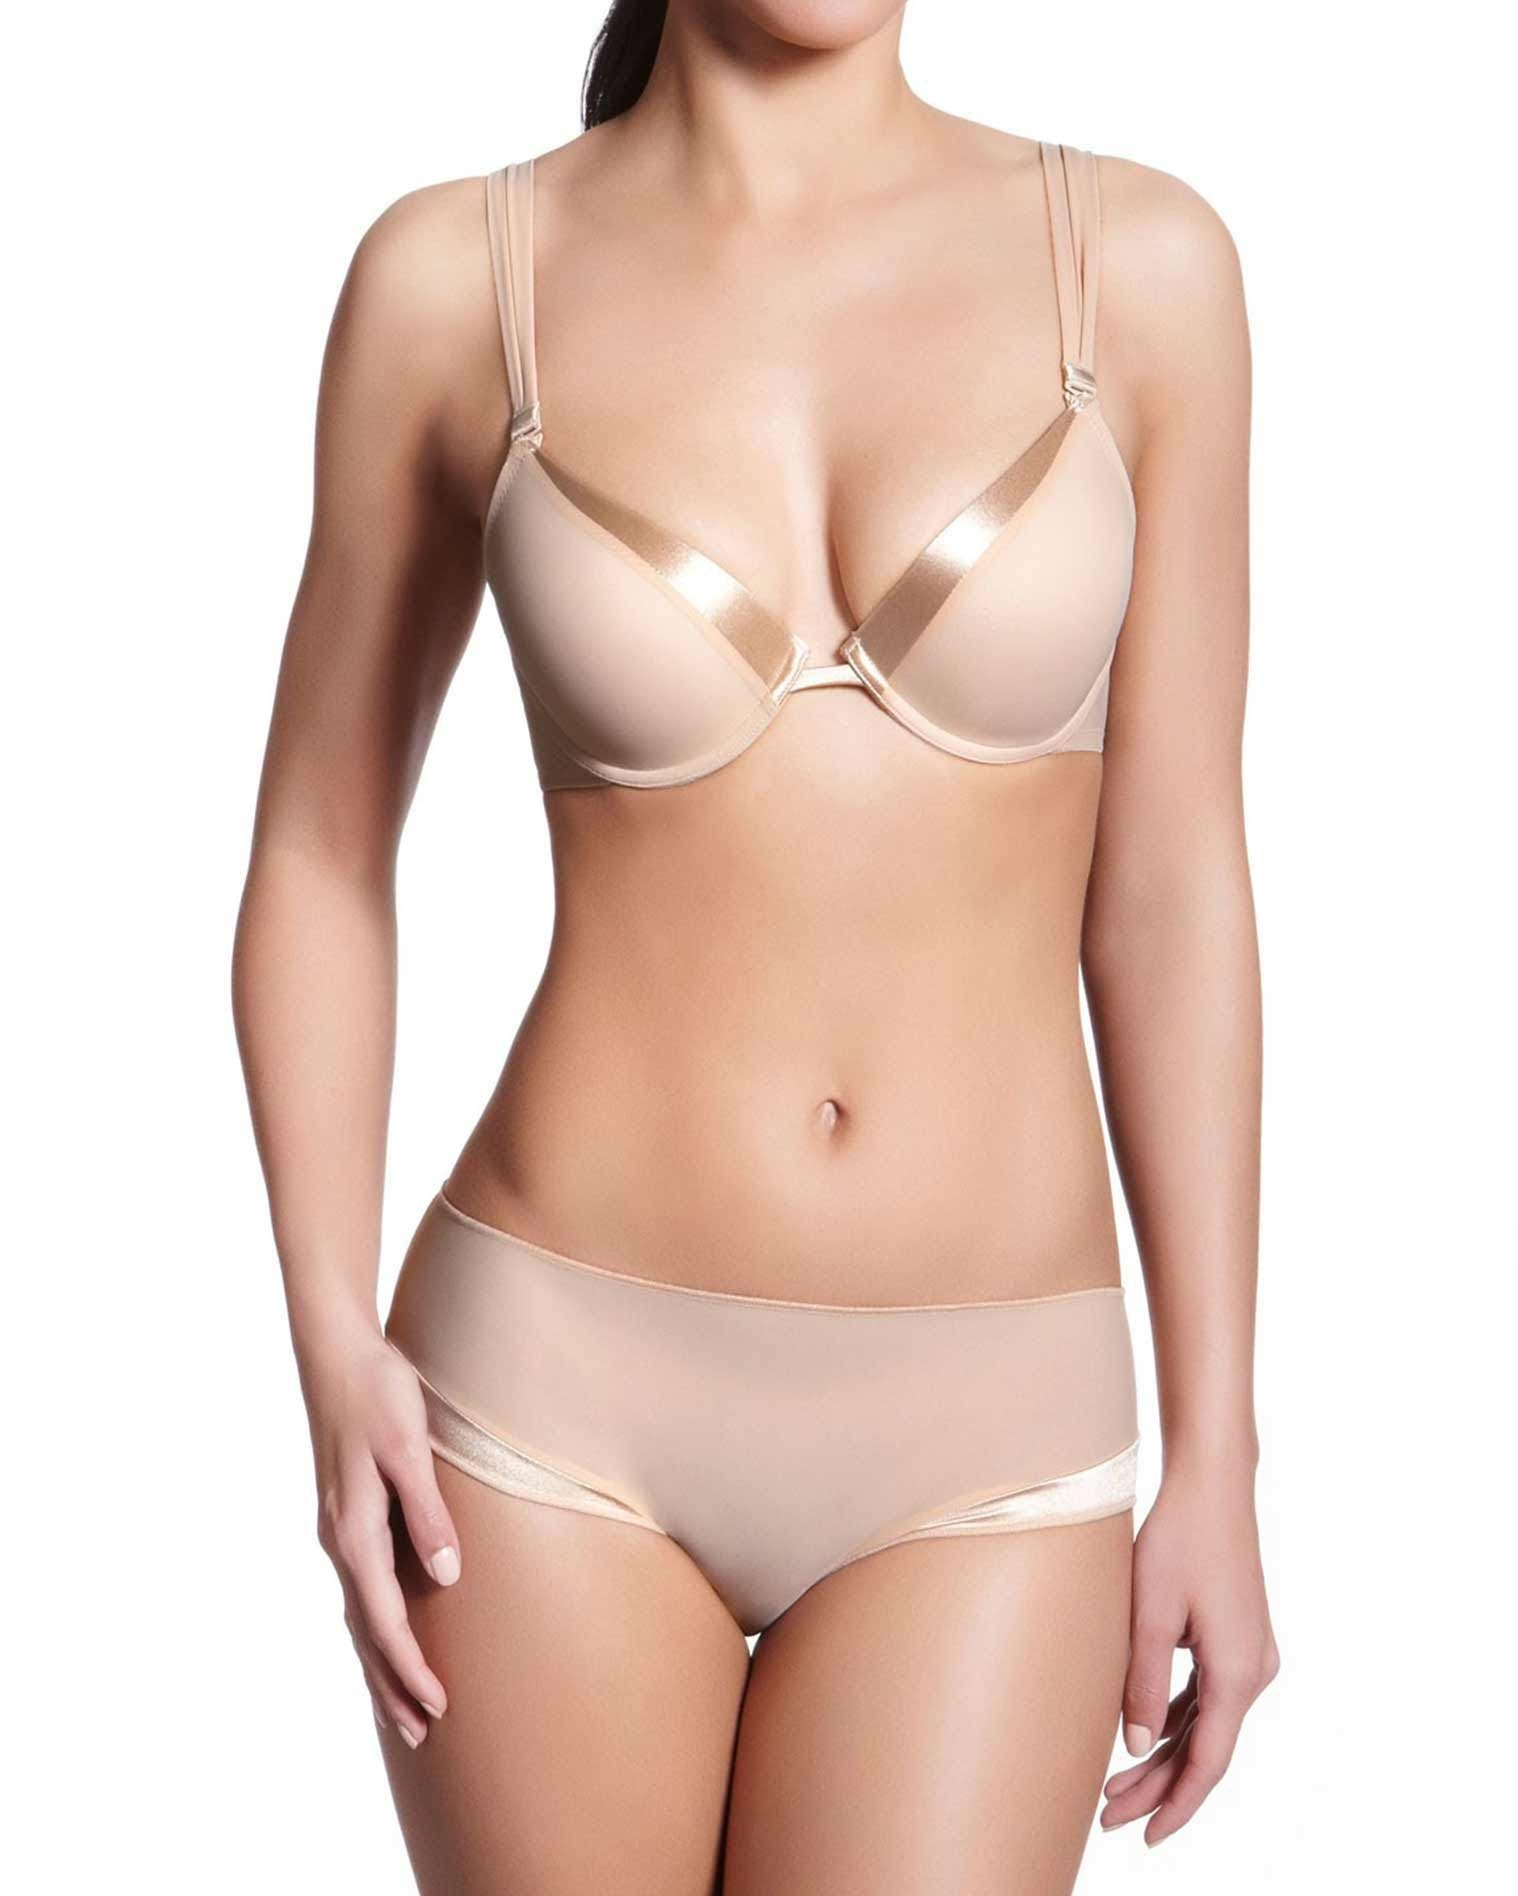 Smooth cup push up bra - Nude